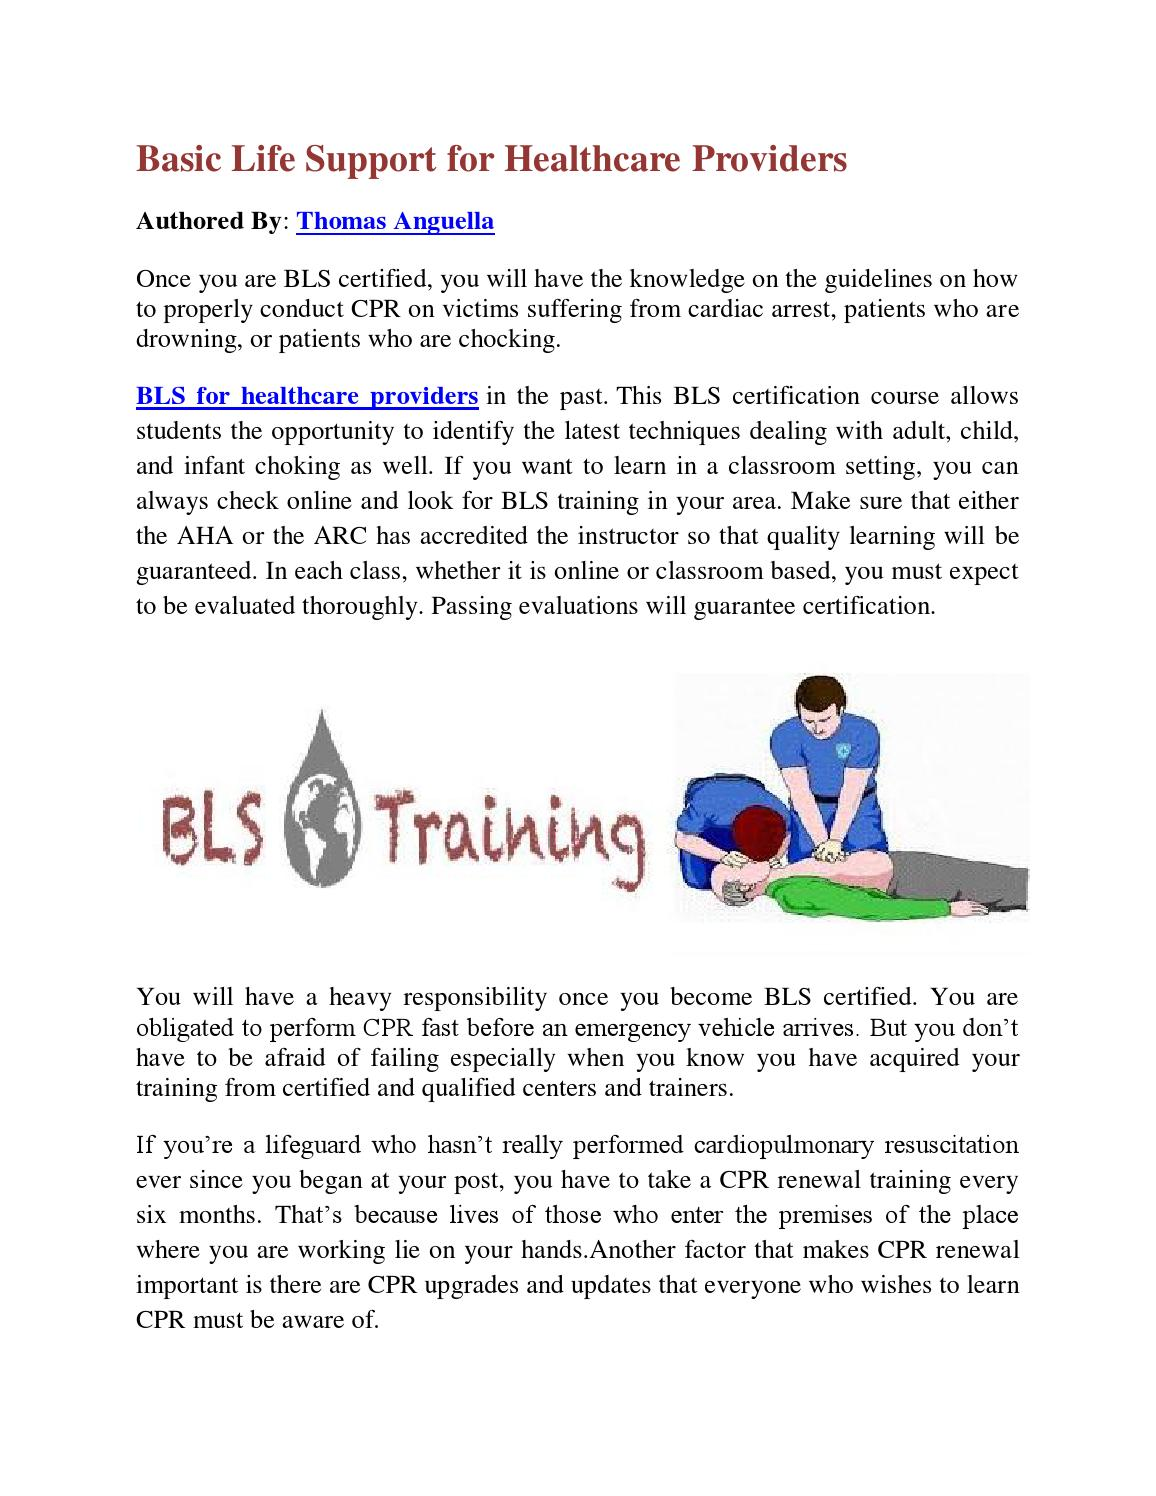 Basic Life Support For Healthcare Providers By Thomas Angeulla Issuu